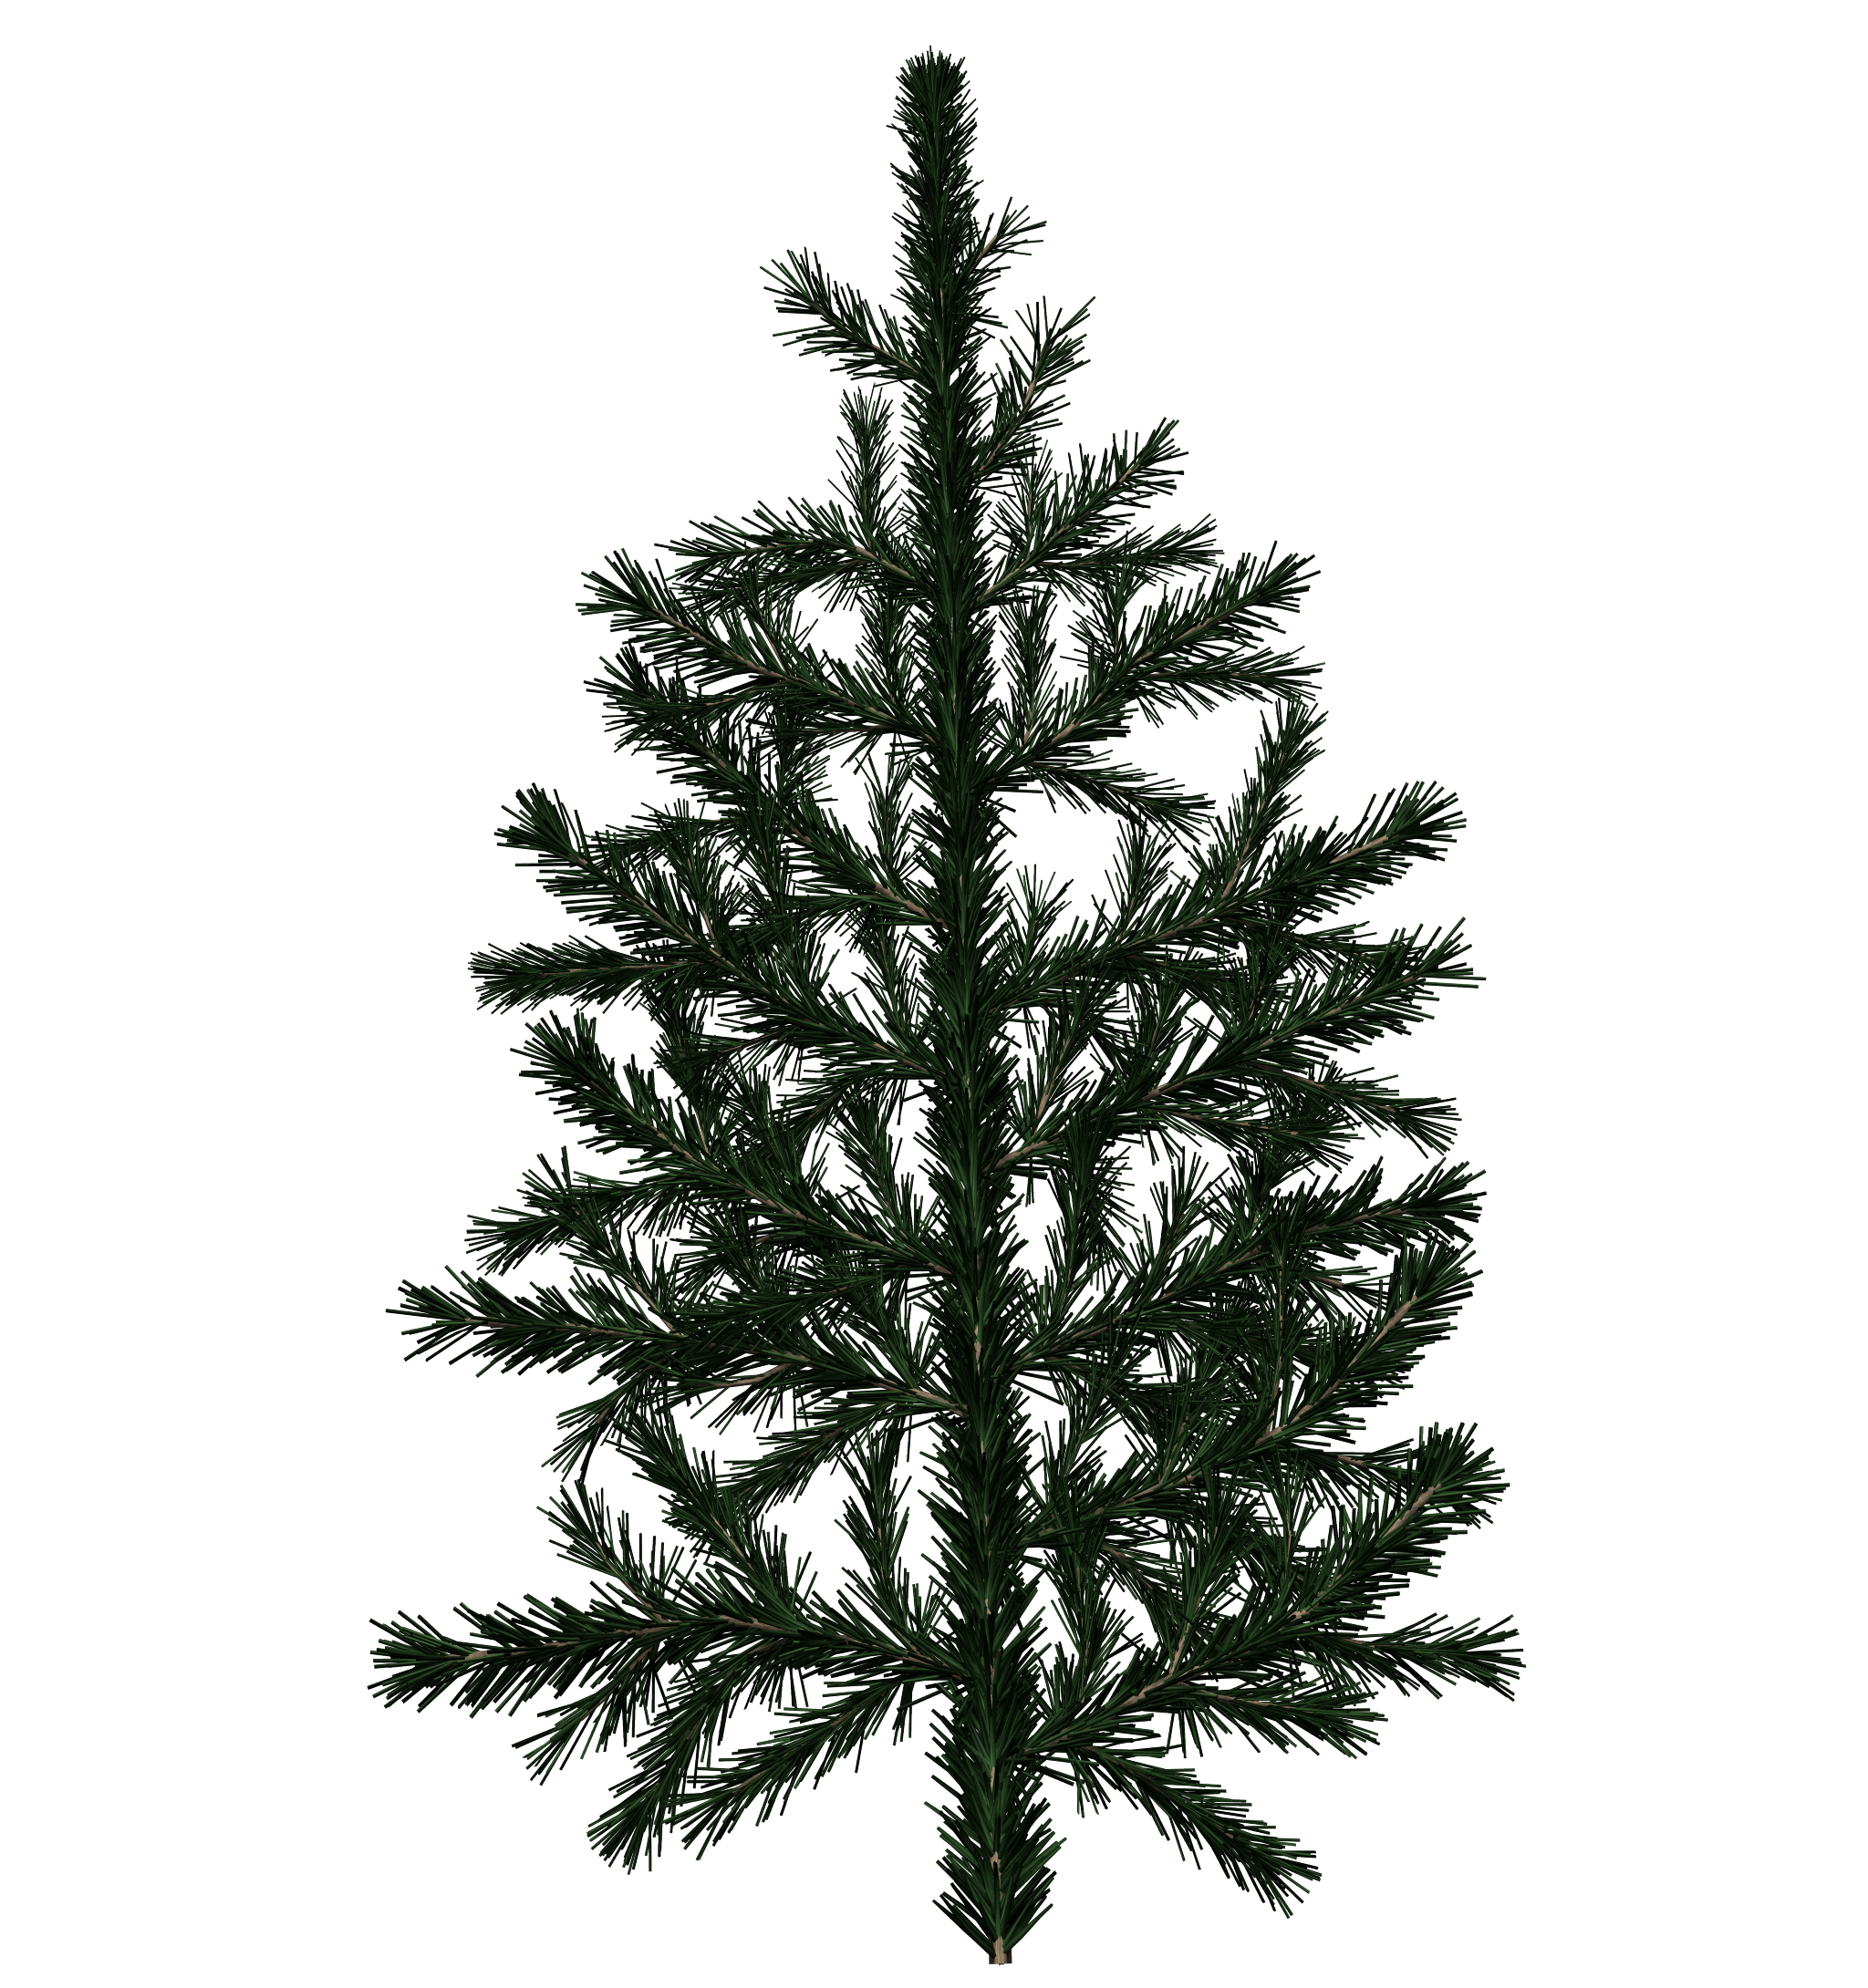 Pine tree texture png. Spruce branch sharecg view